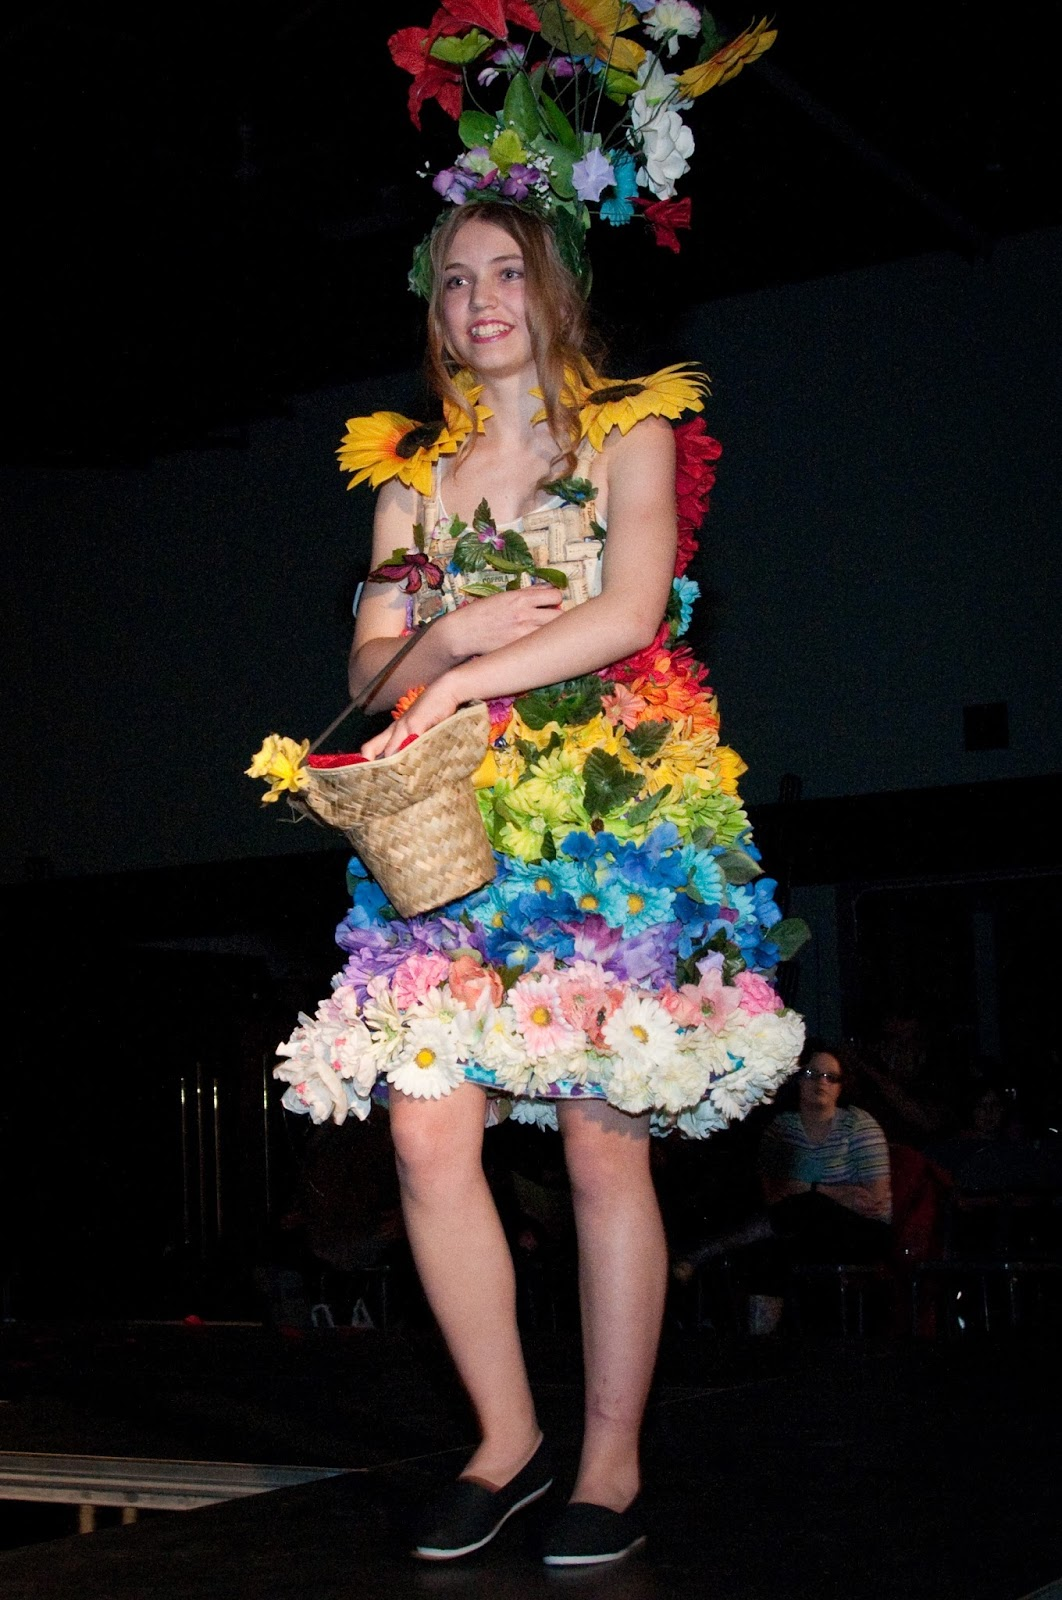 dress - Art to recycled wear fashion show video